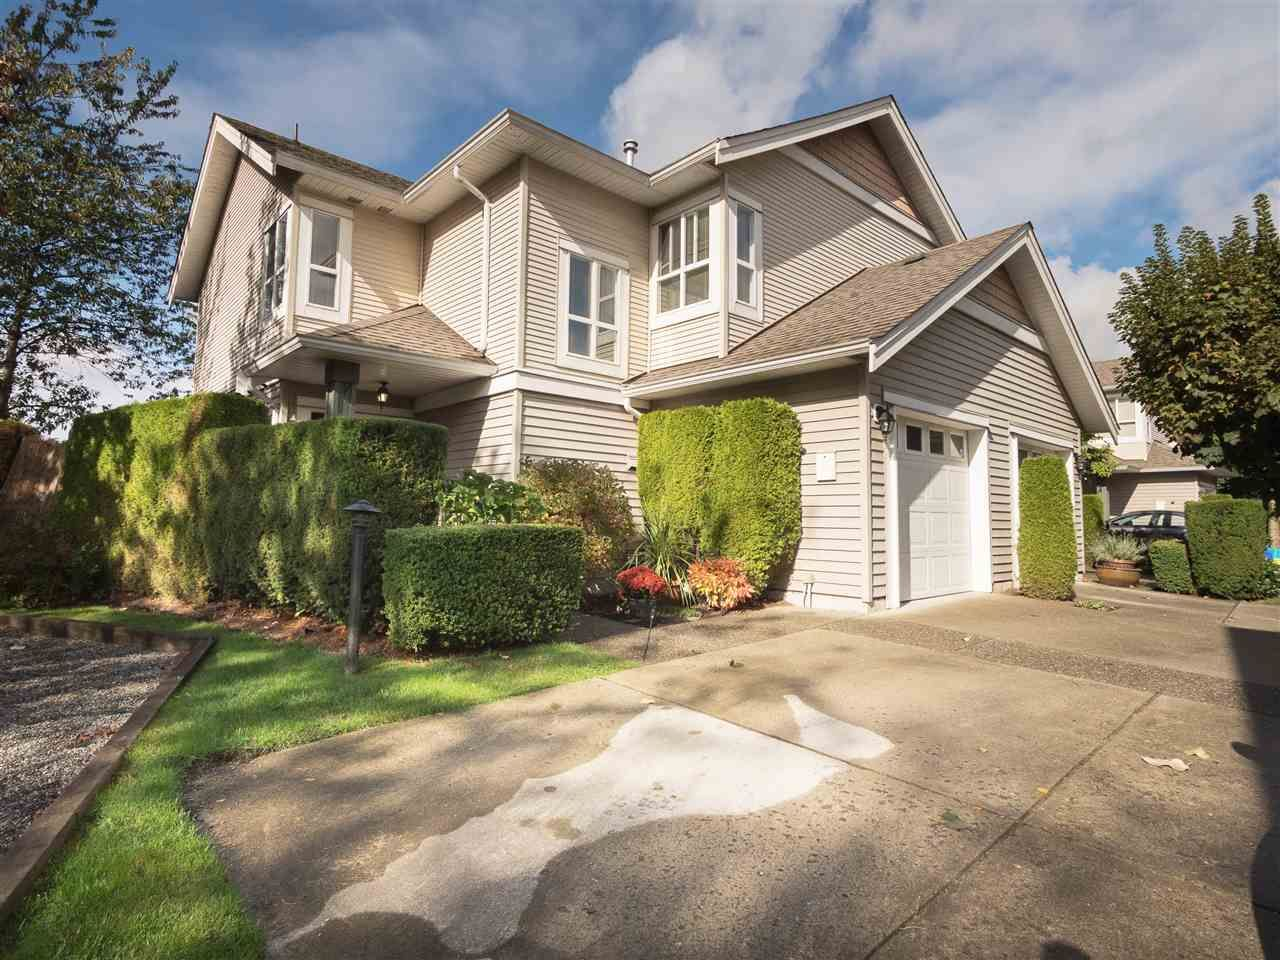 """Main Photo: 8 6513 200 Street in Langley: Willoughby Heights Townhouse for sale in """"Logan Creek"""" : MLS®# R2213633"""